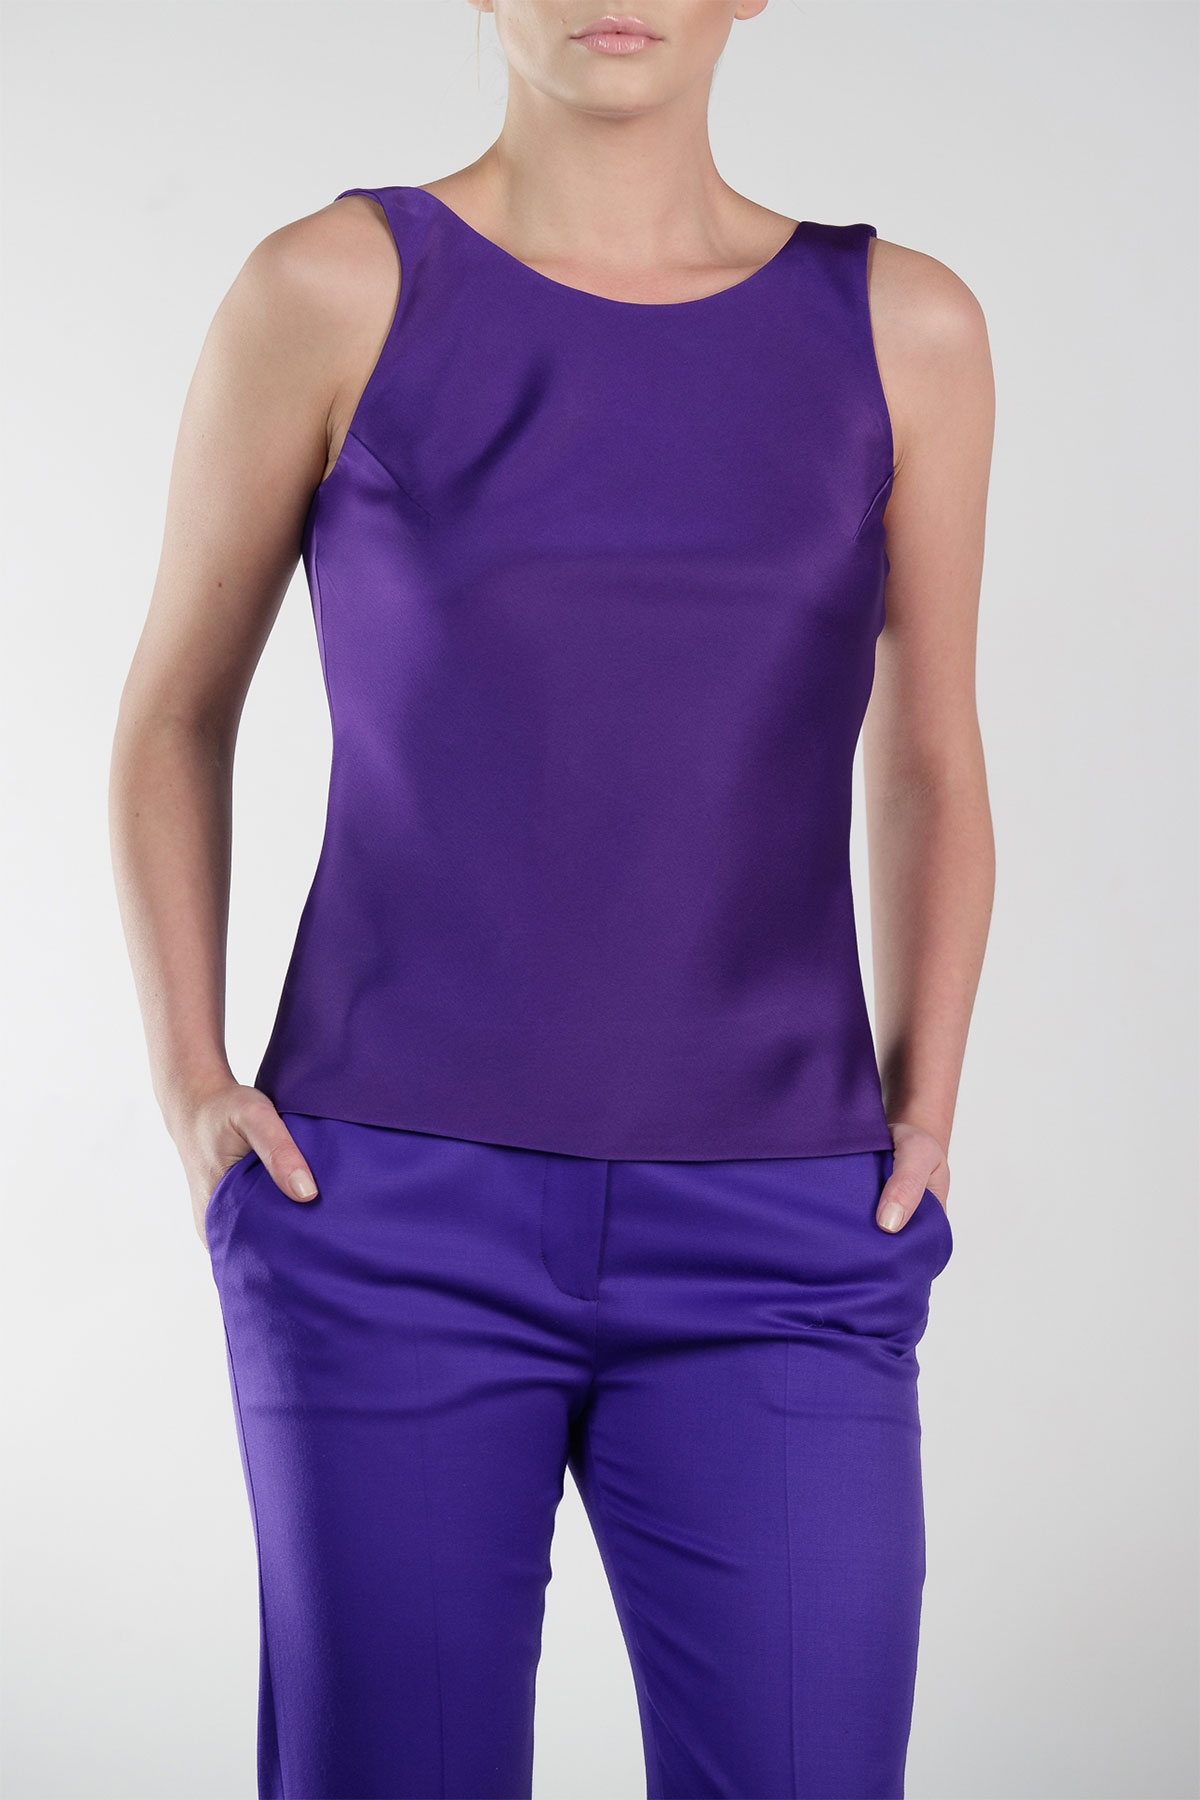 PURPLE SILK TOP WITH OPEN BACK